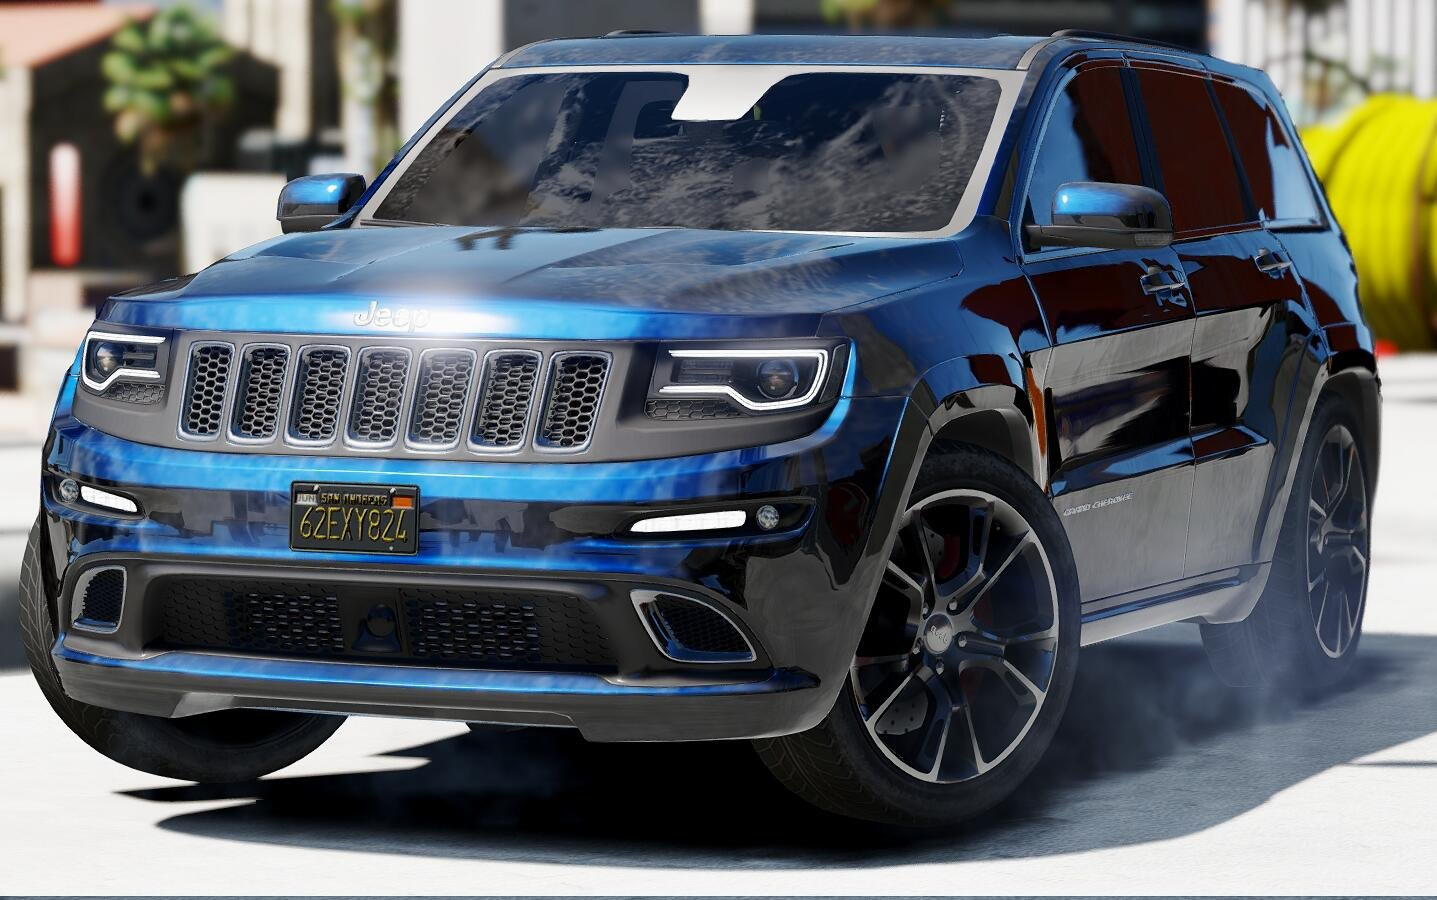 Jeep grand cherokee srt 2014 vehicules pour gta v sur - 2015 jeep grand cherokee led interior lights ...